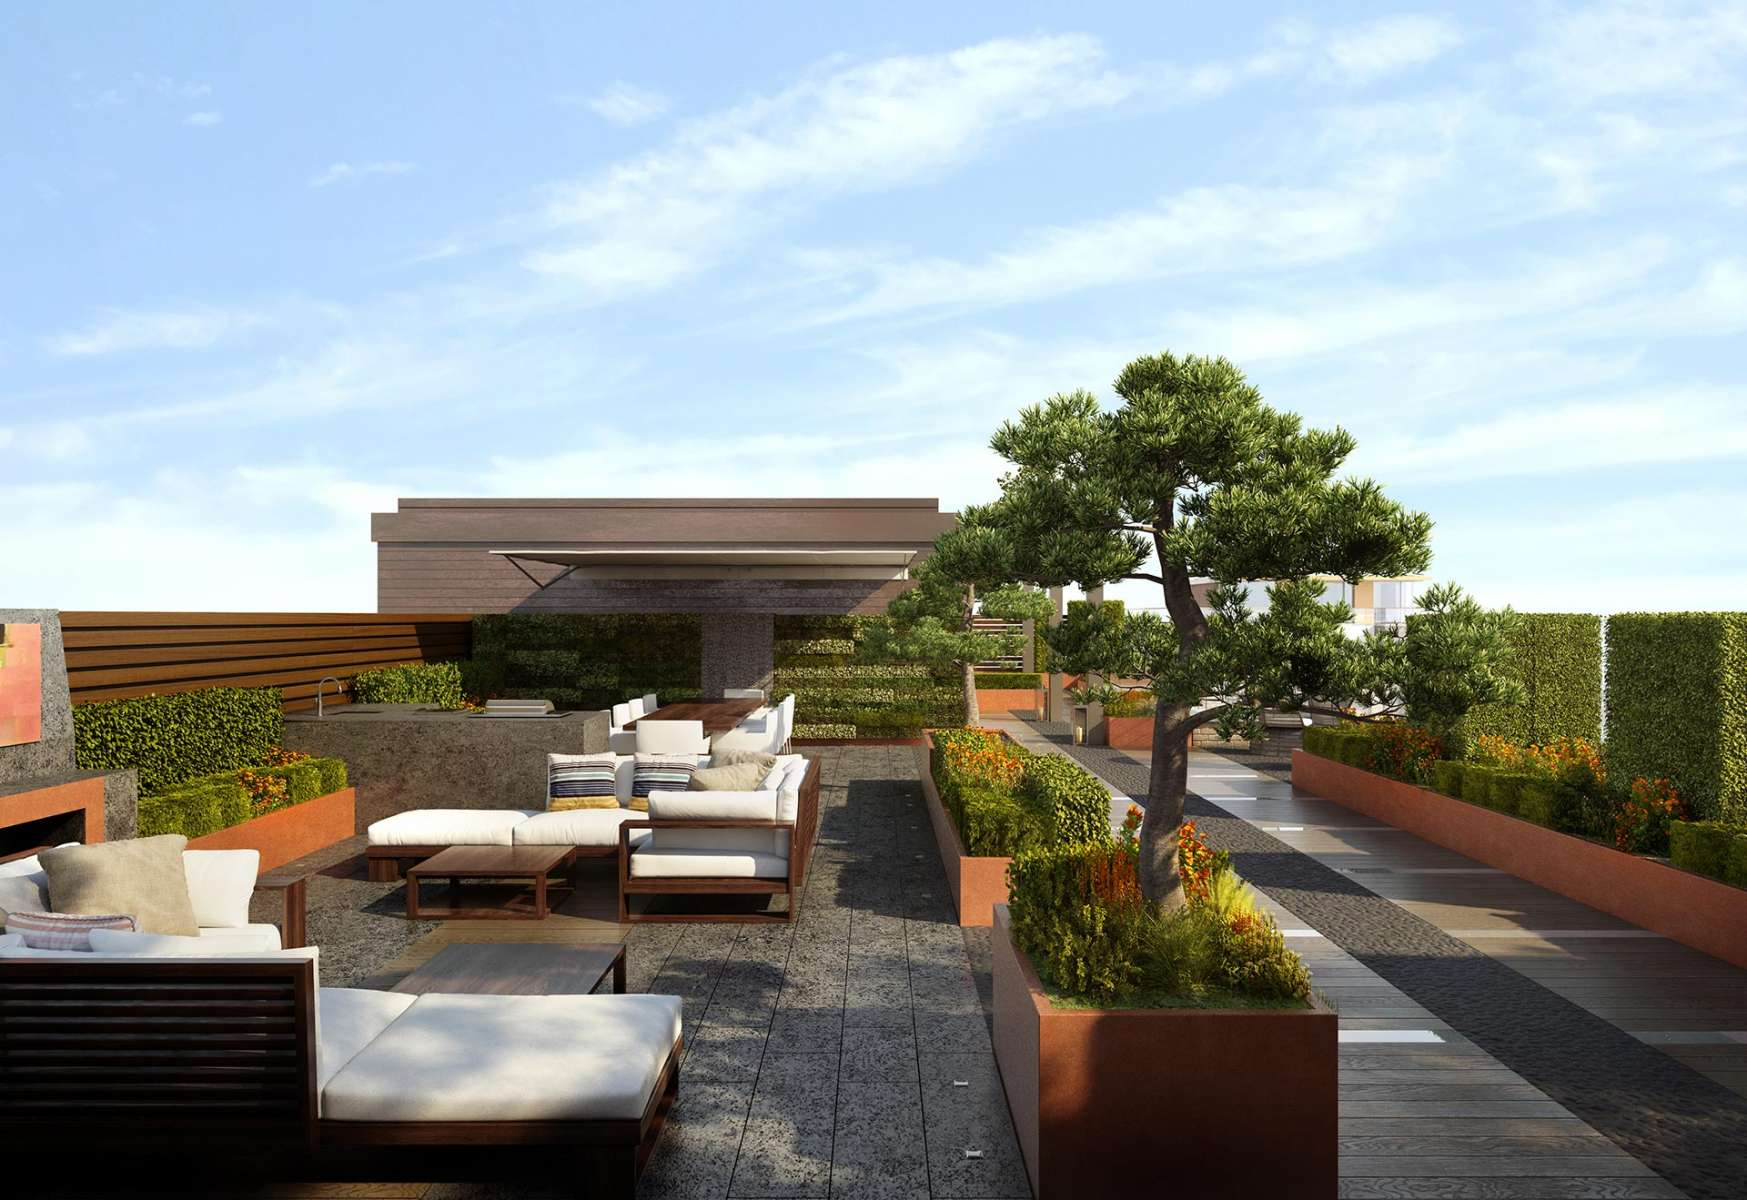 b Chelsea Creek Dockside House Penthouse Rooftop Garden c St George Plc